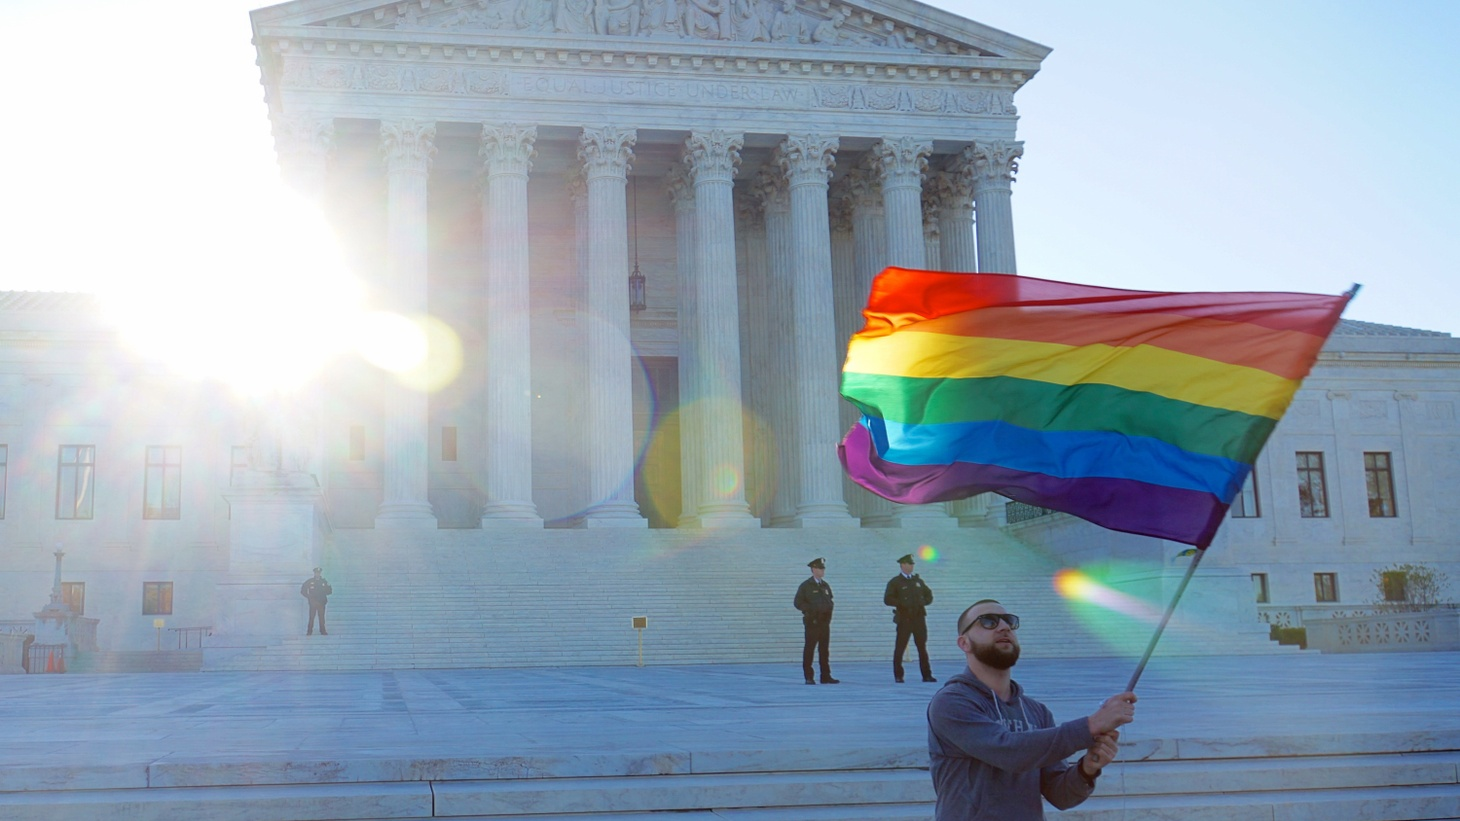 The US Supreme Court was divided today, but the majority made history by ruling that the 14th amendment to the Constitution guarantees the right of gays and lesbians to be married. President Obama called it a victory for all Americans.